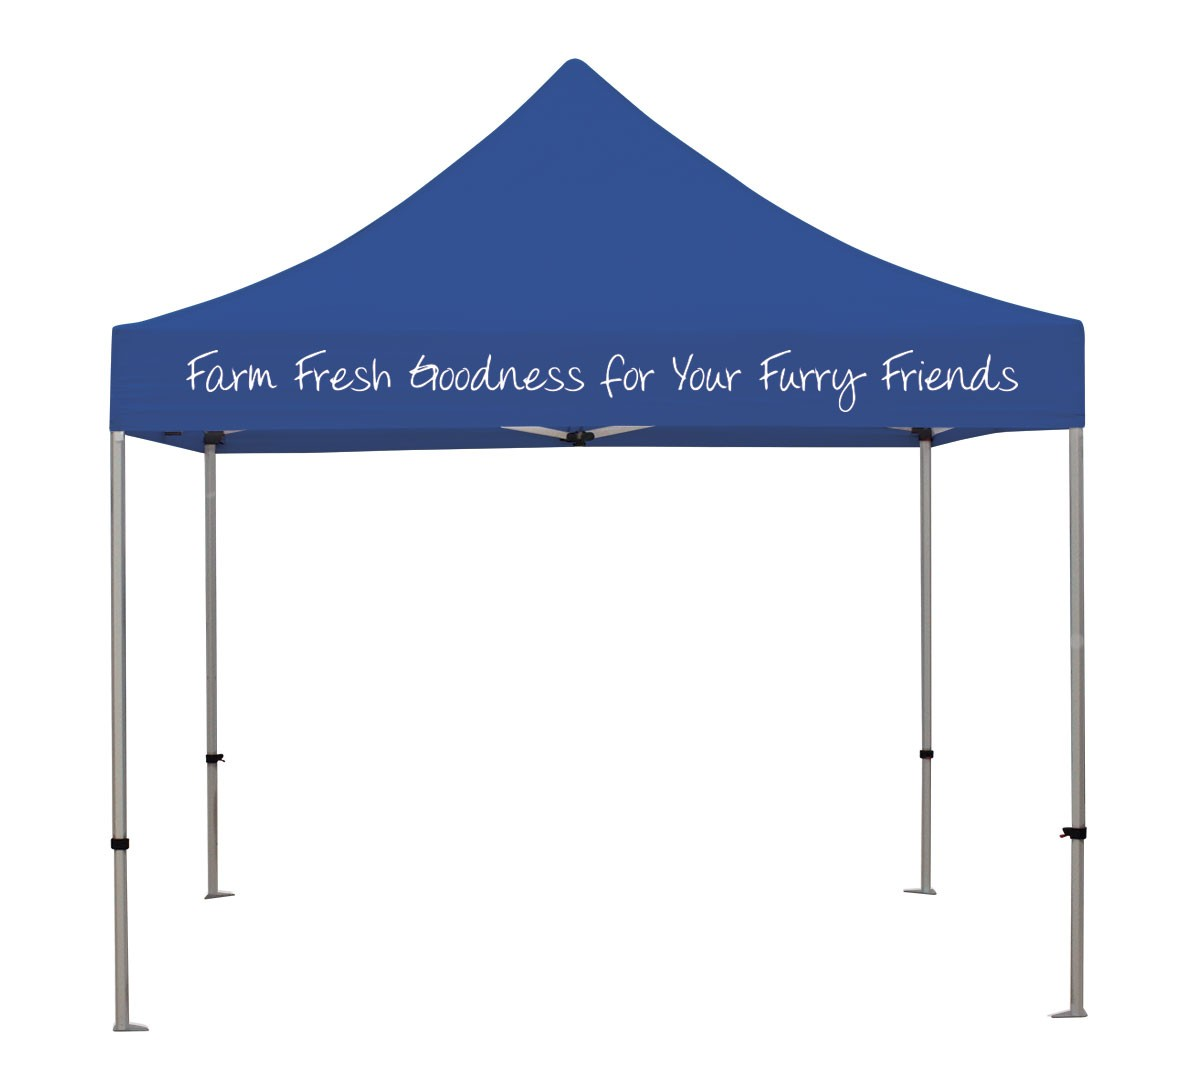 Canopy Tent Kit with 1 color imprint